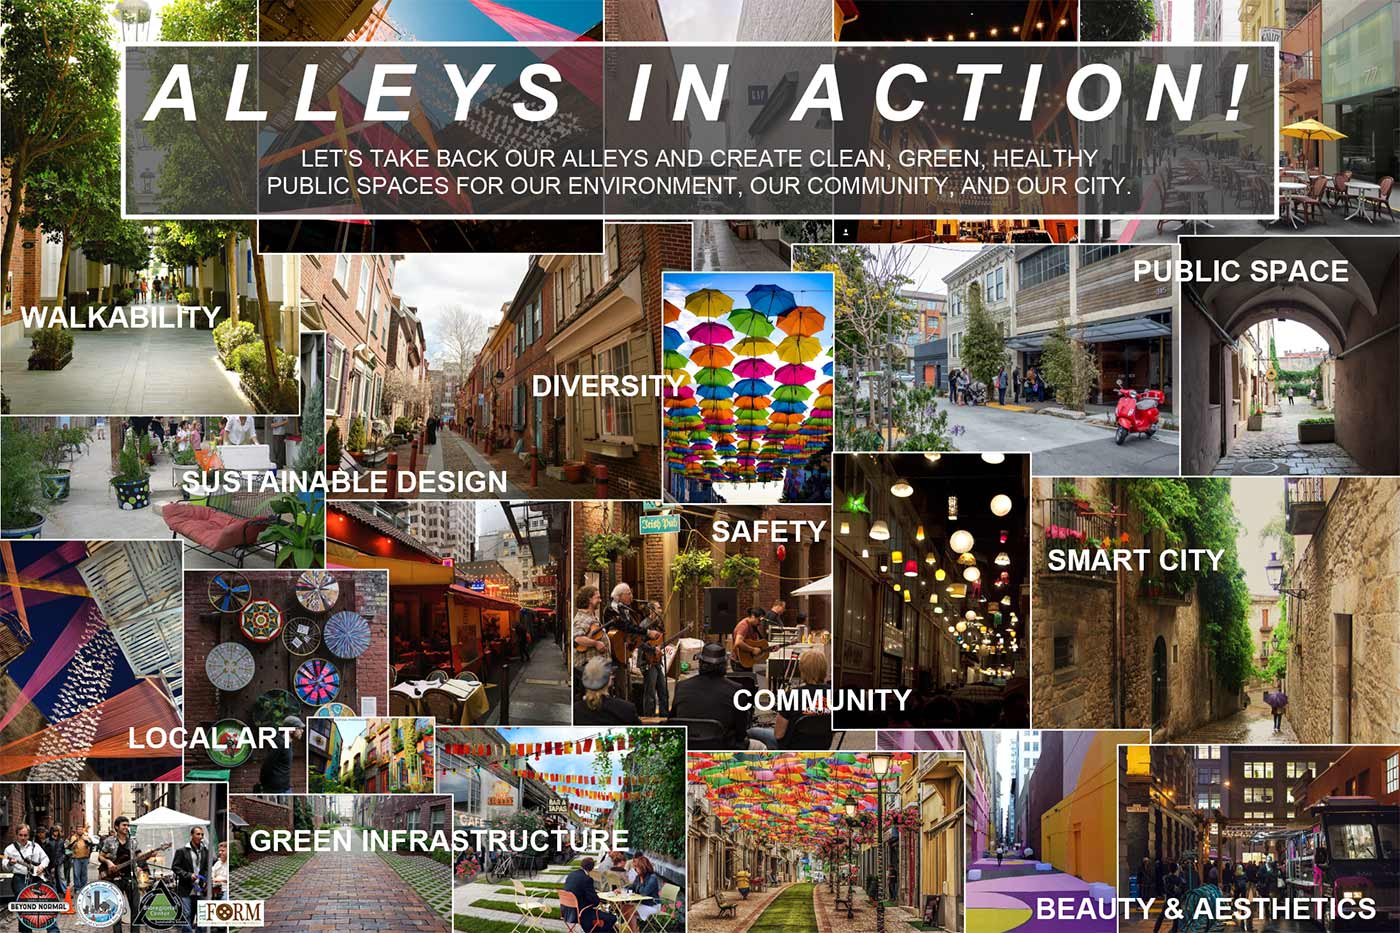 Alleys in Action Prjoect for neglected public space